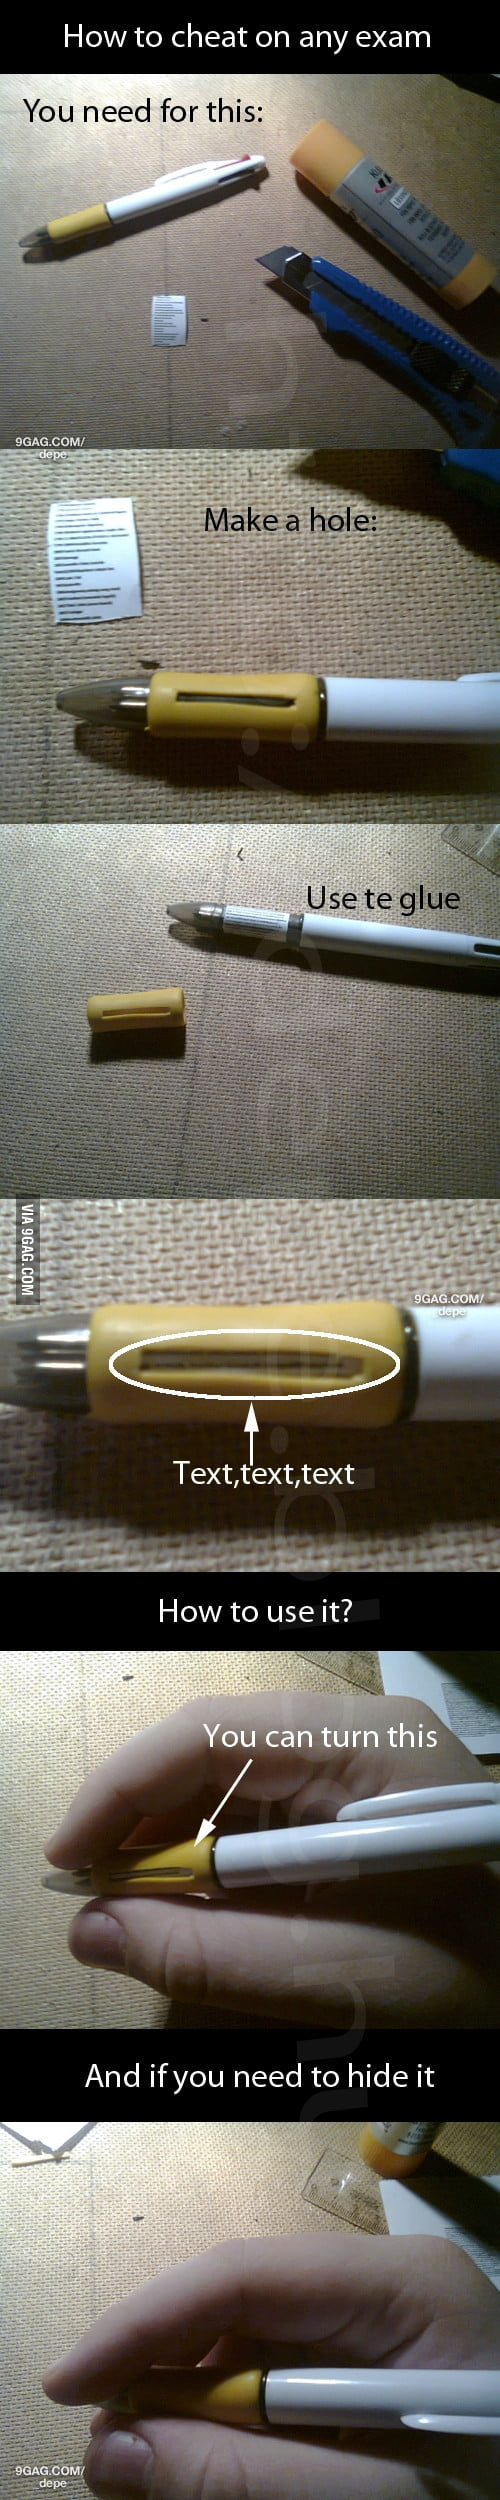 How to cheat on any exam?